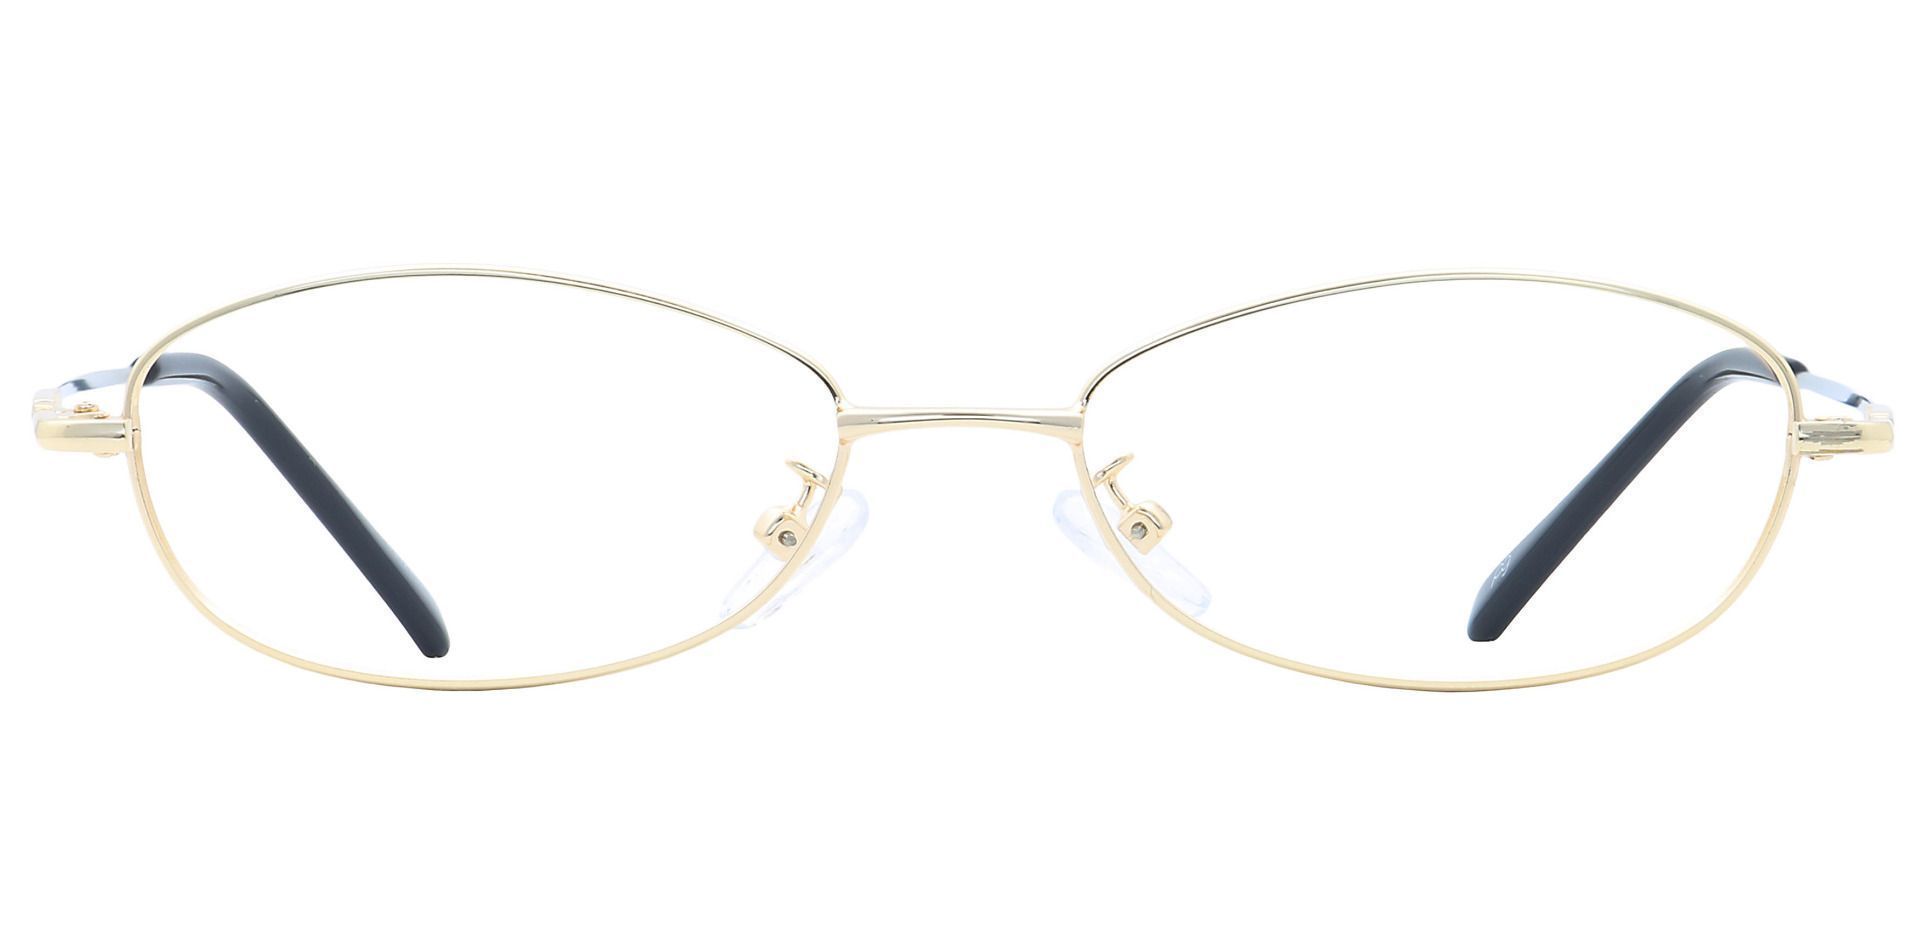 Coronation Oval Reading Glasses - Yellow